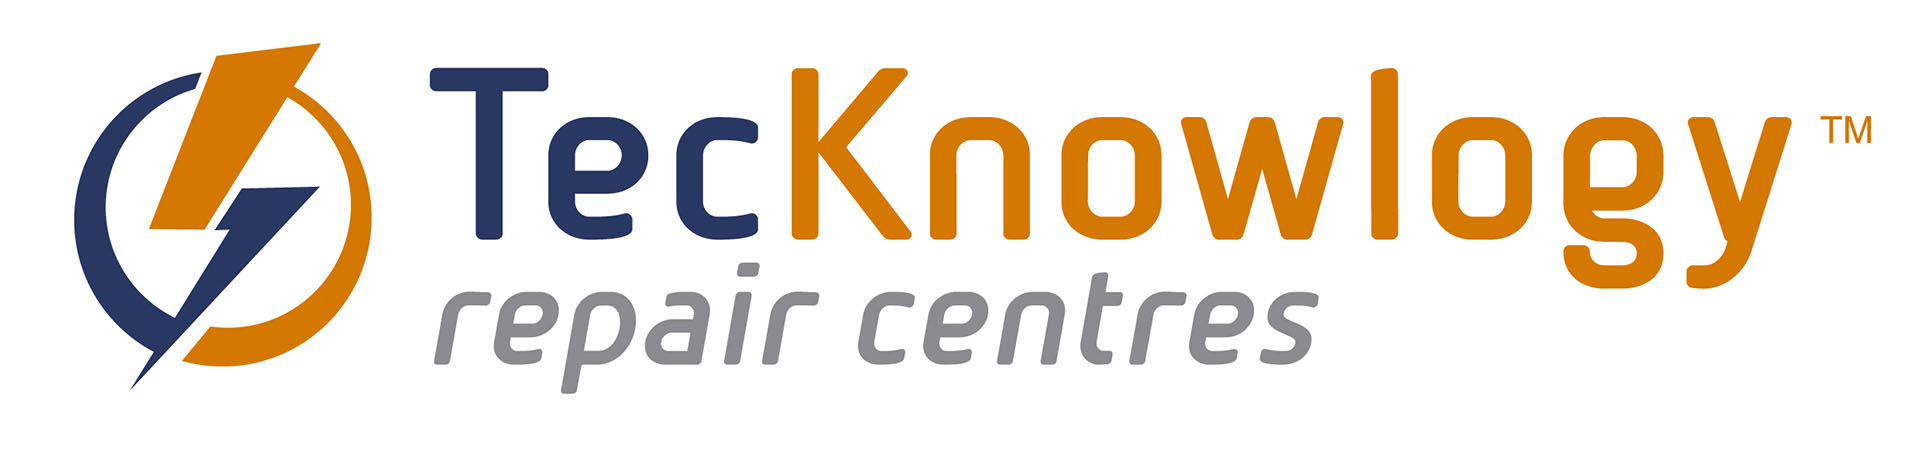 AW launch TecKnowlogy Centres™ with new website